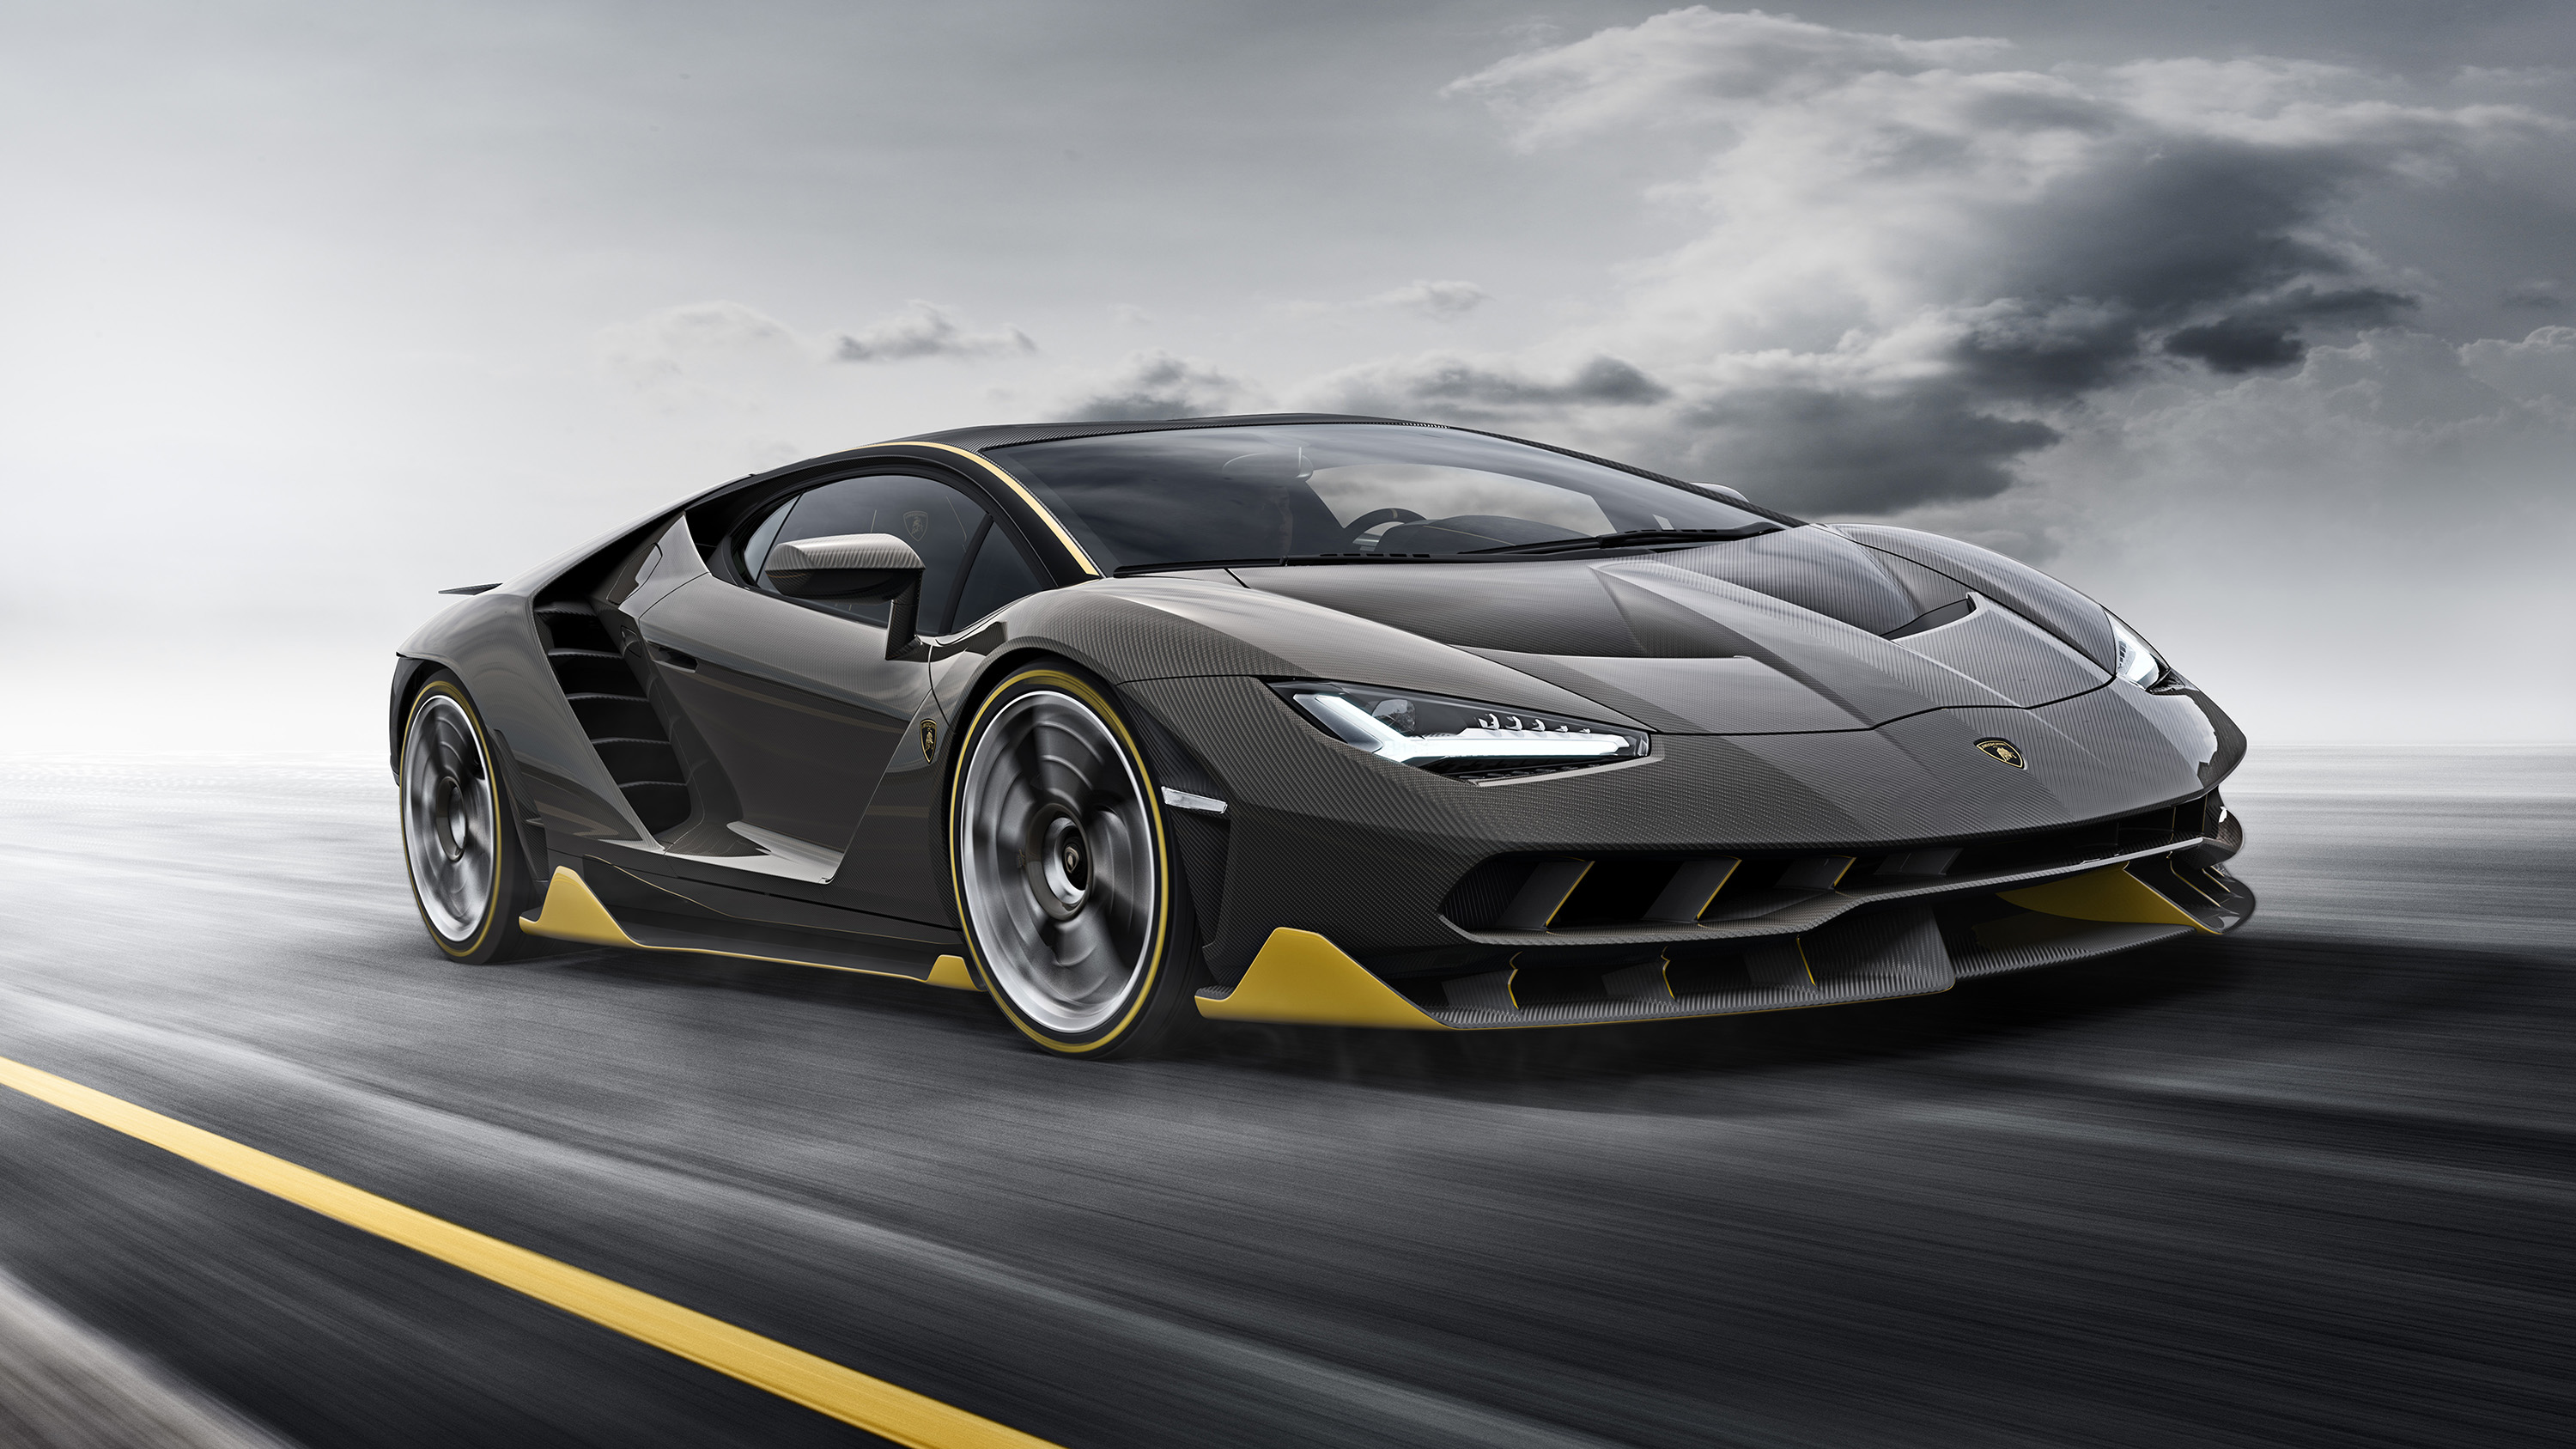 3220 sport car hd wallpapers | background images - wallpaper abyss